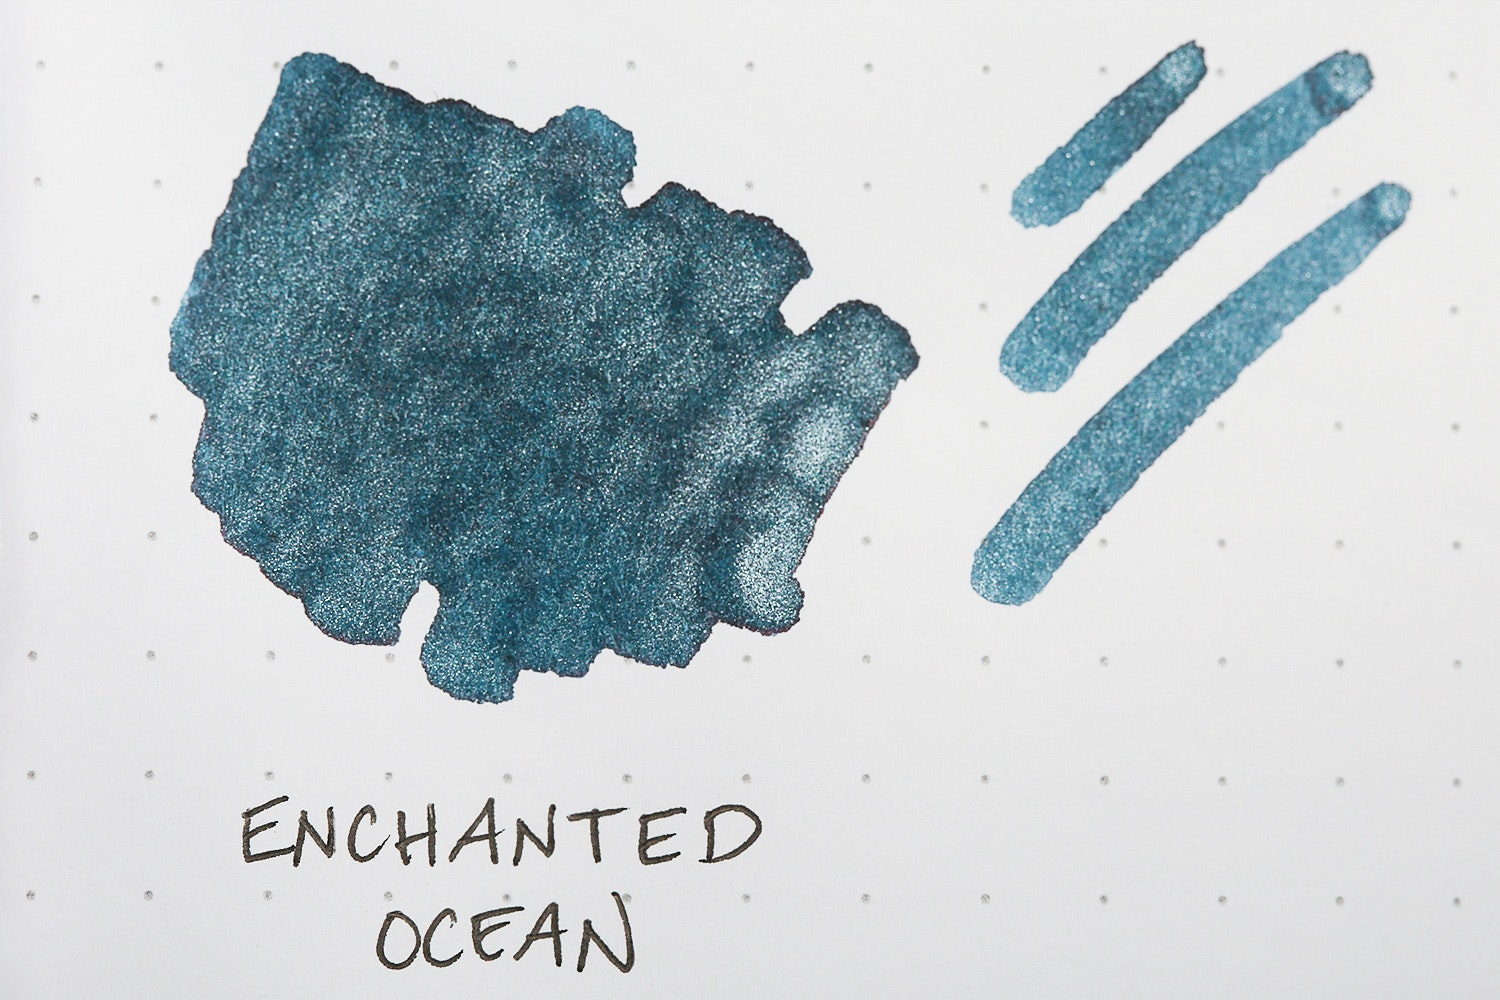 Enchanted Ocean